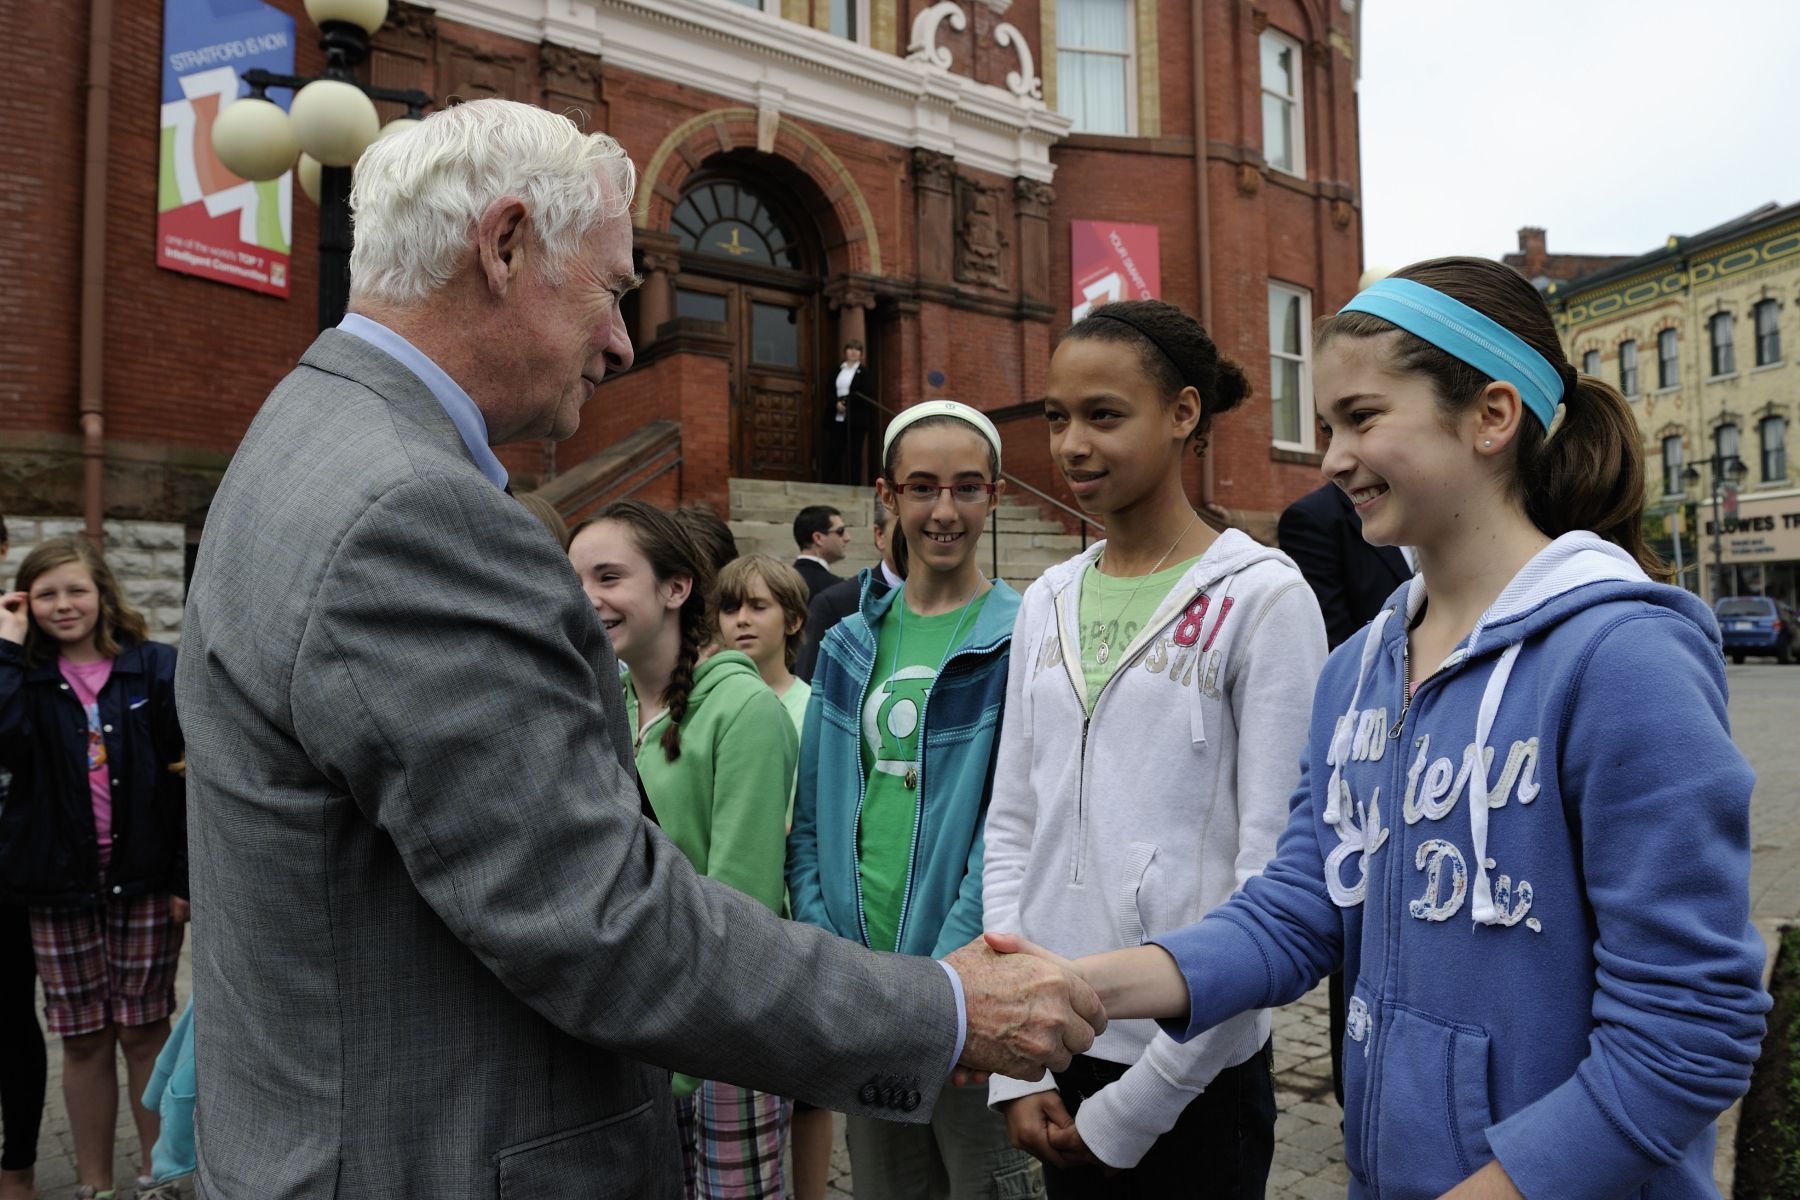 Le Governor General was also greeted by Grade 6 students from the Jeanne Sauvé Catholic School upon his arrival at Stratford City Hall.